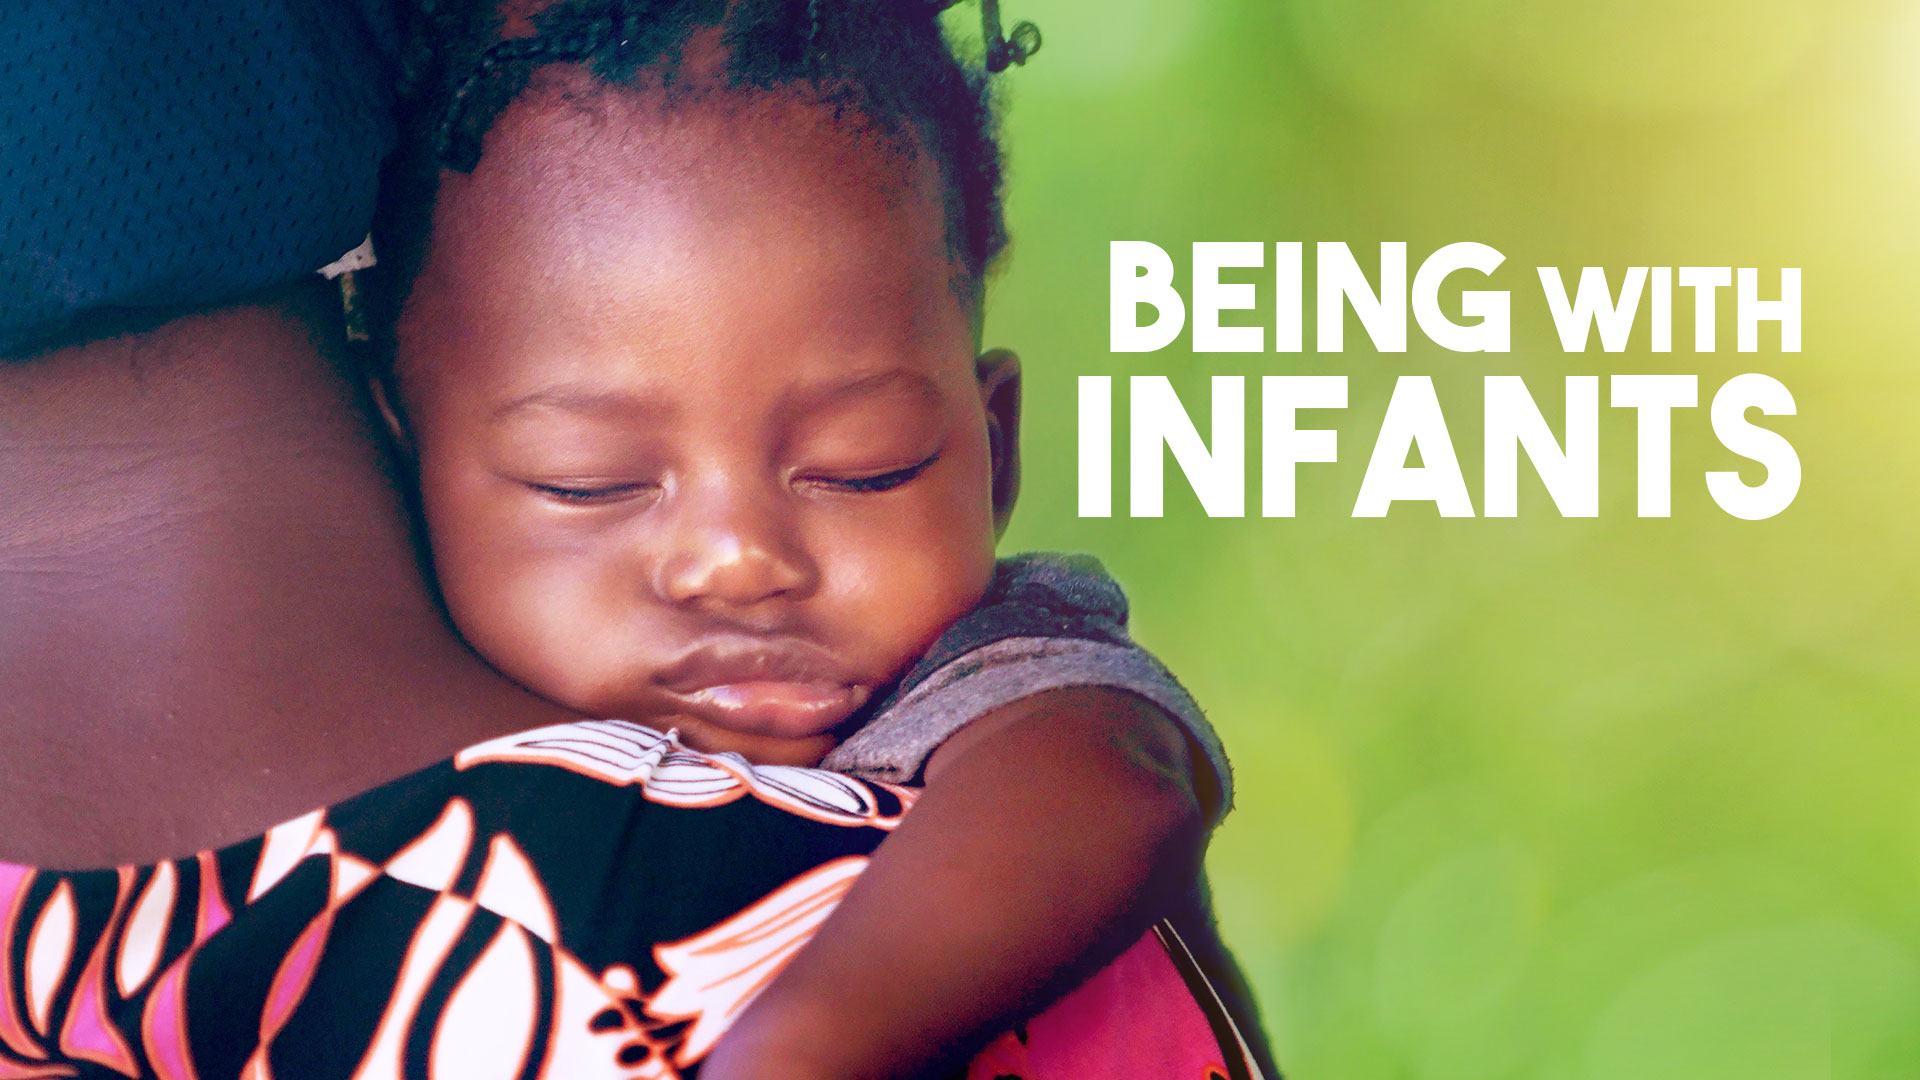 Being With Infants  banner image